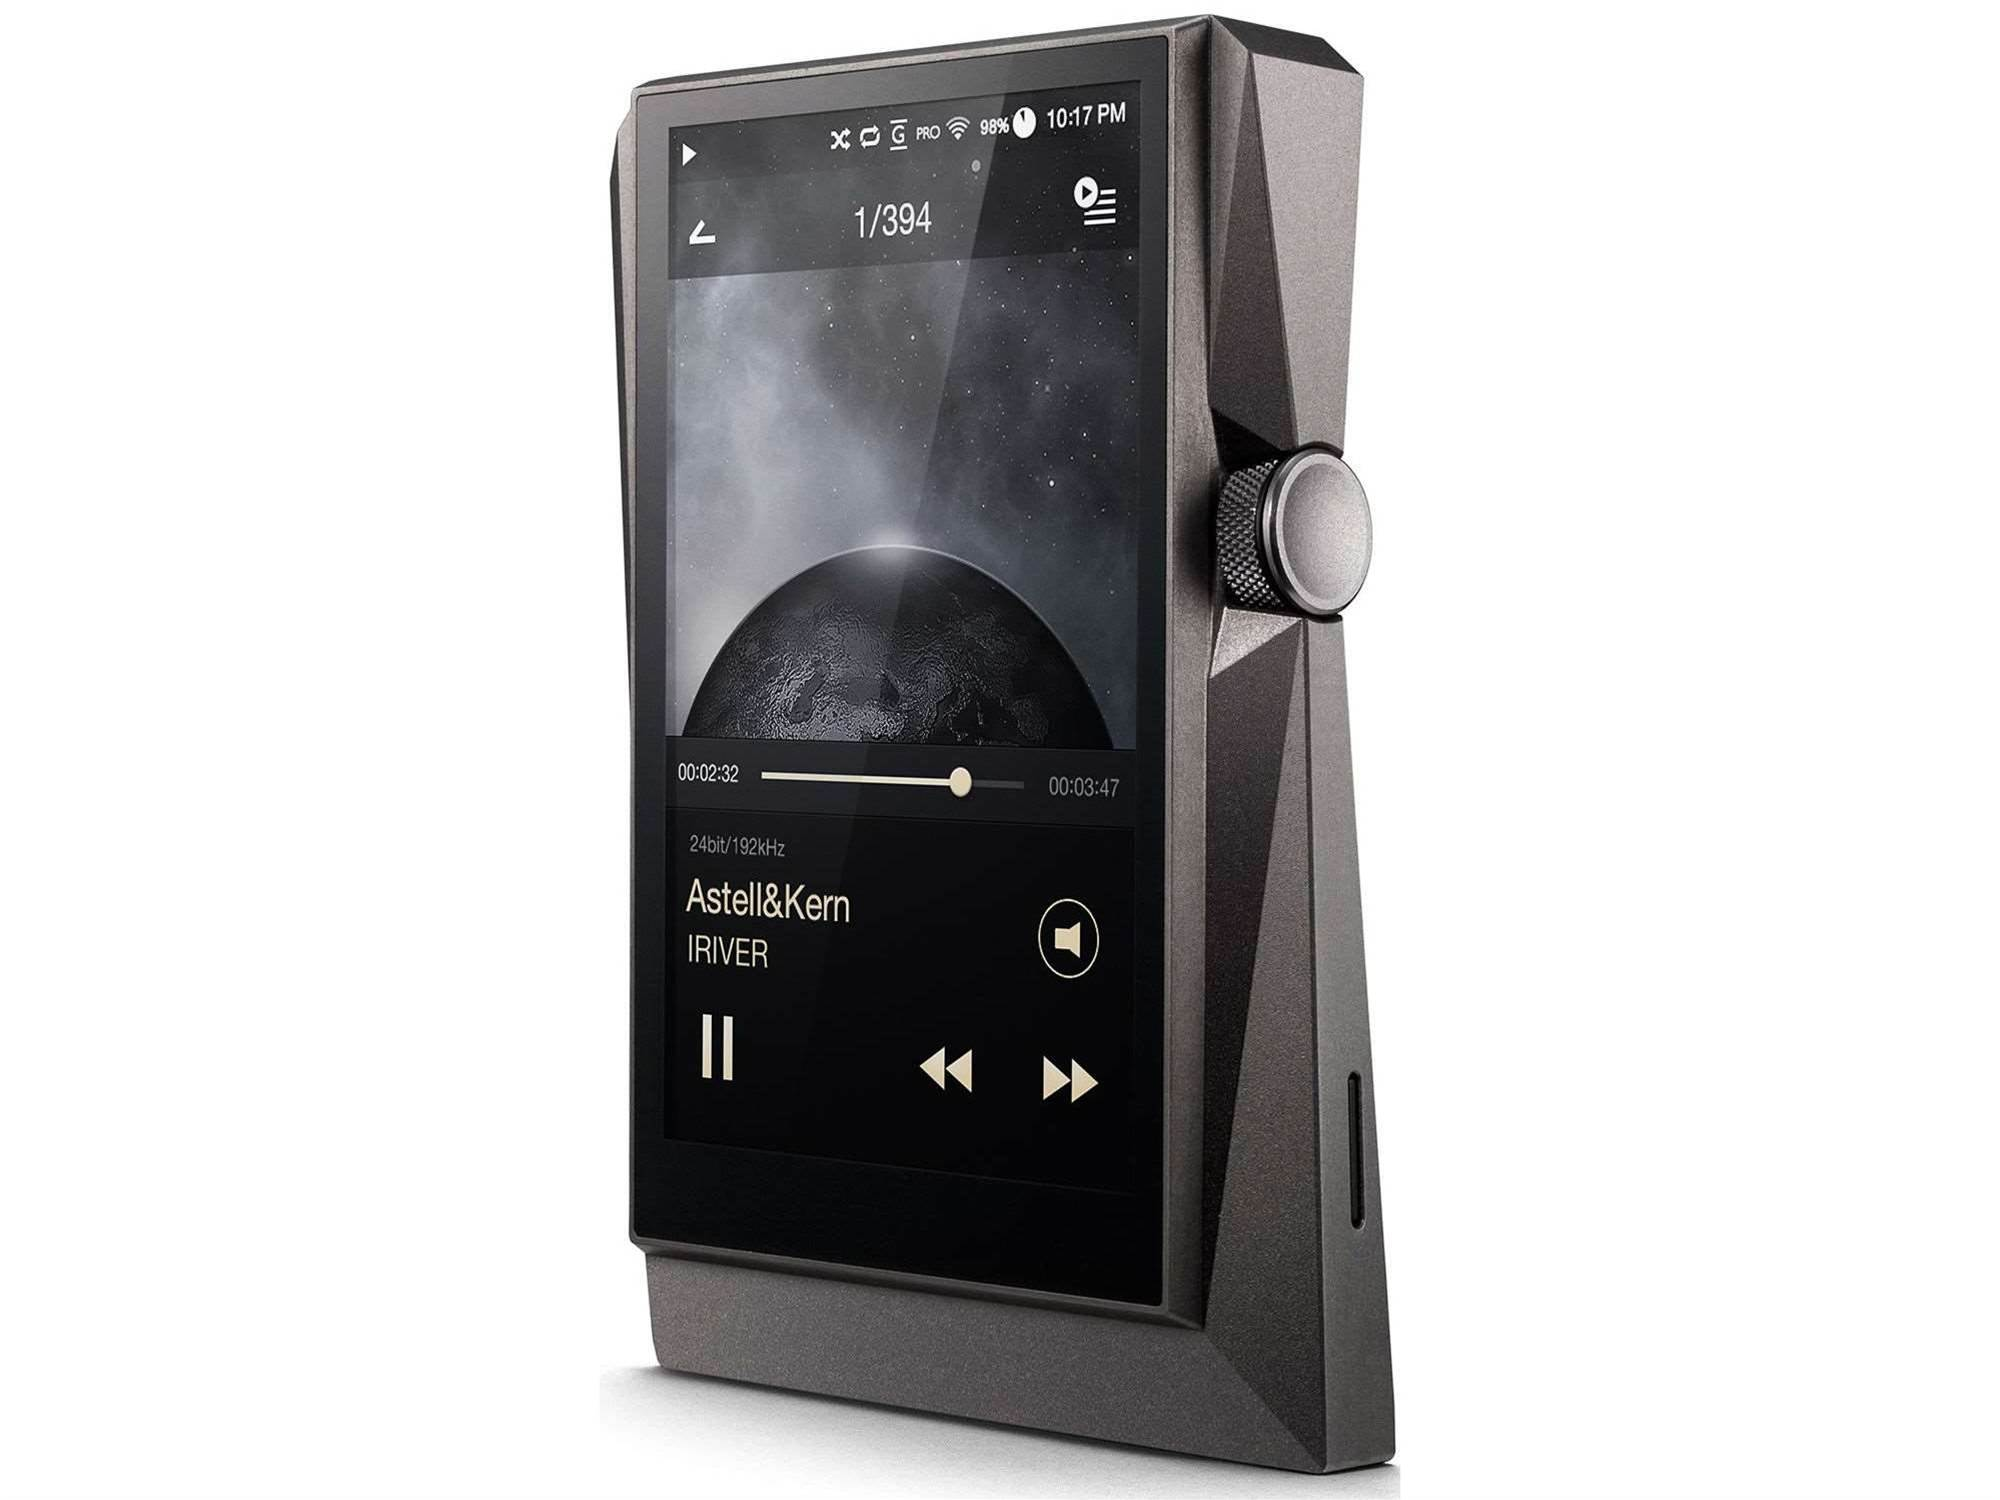 This portable high-res audio player will set you back $5000